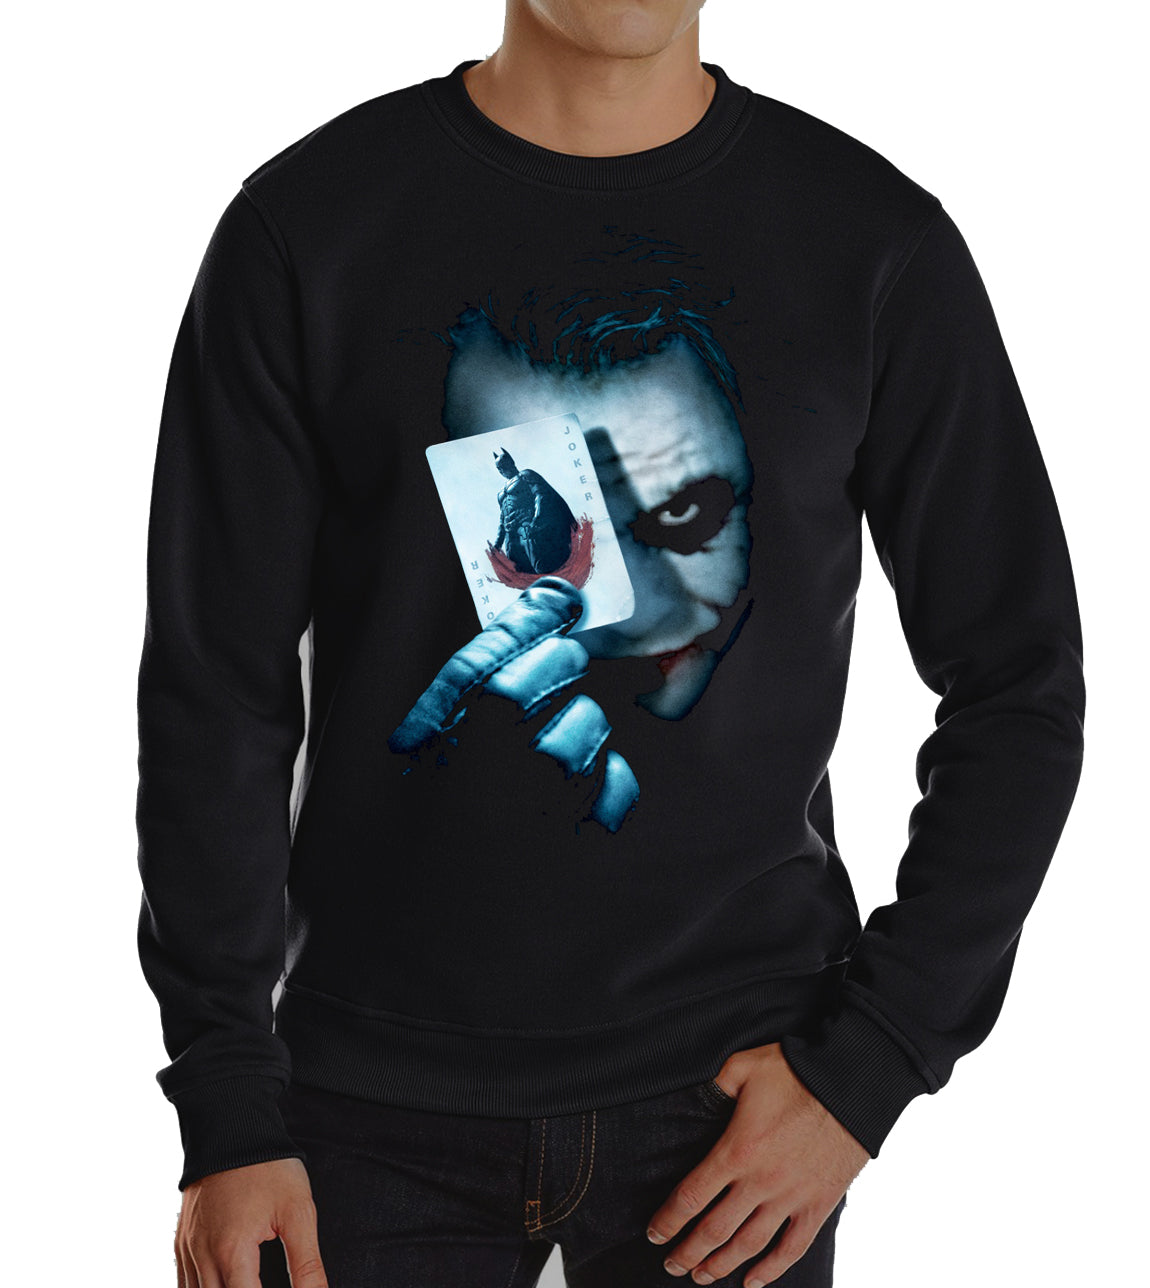 Joker long sweatshirt